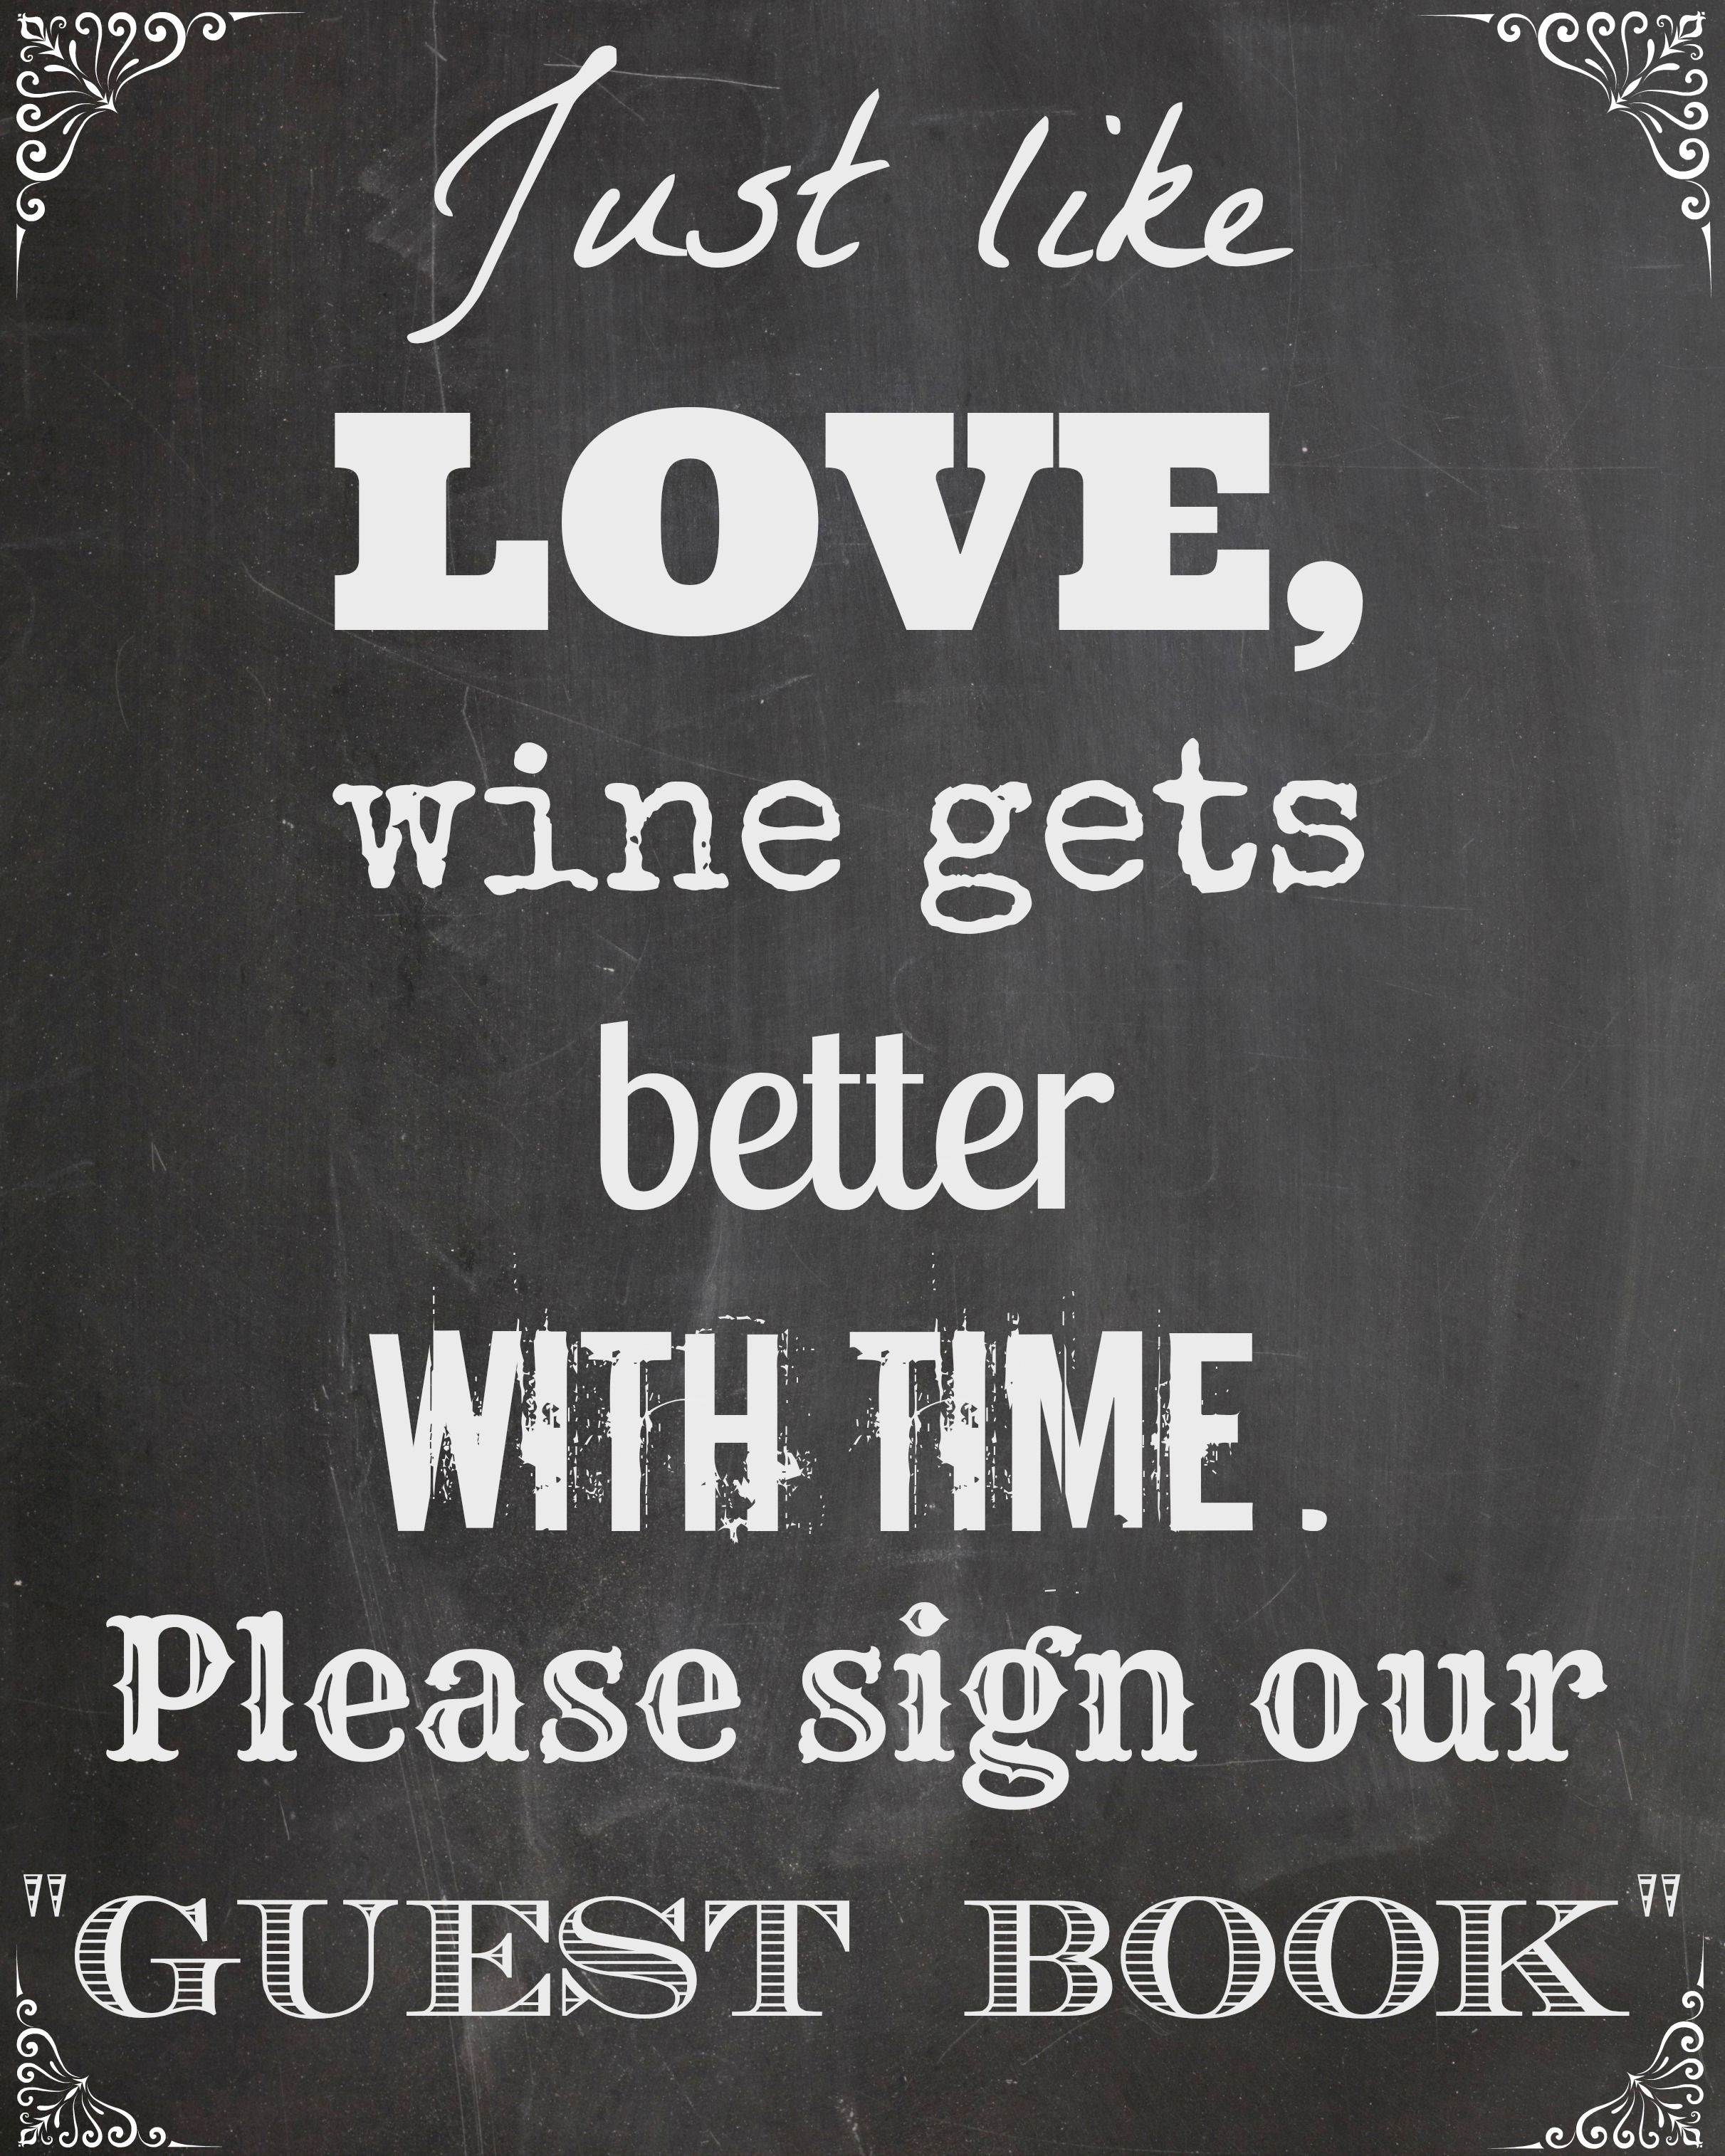 Just like Love, wine gets better with time. Please sign